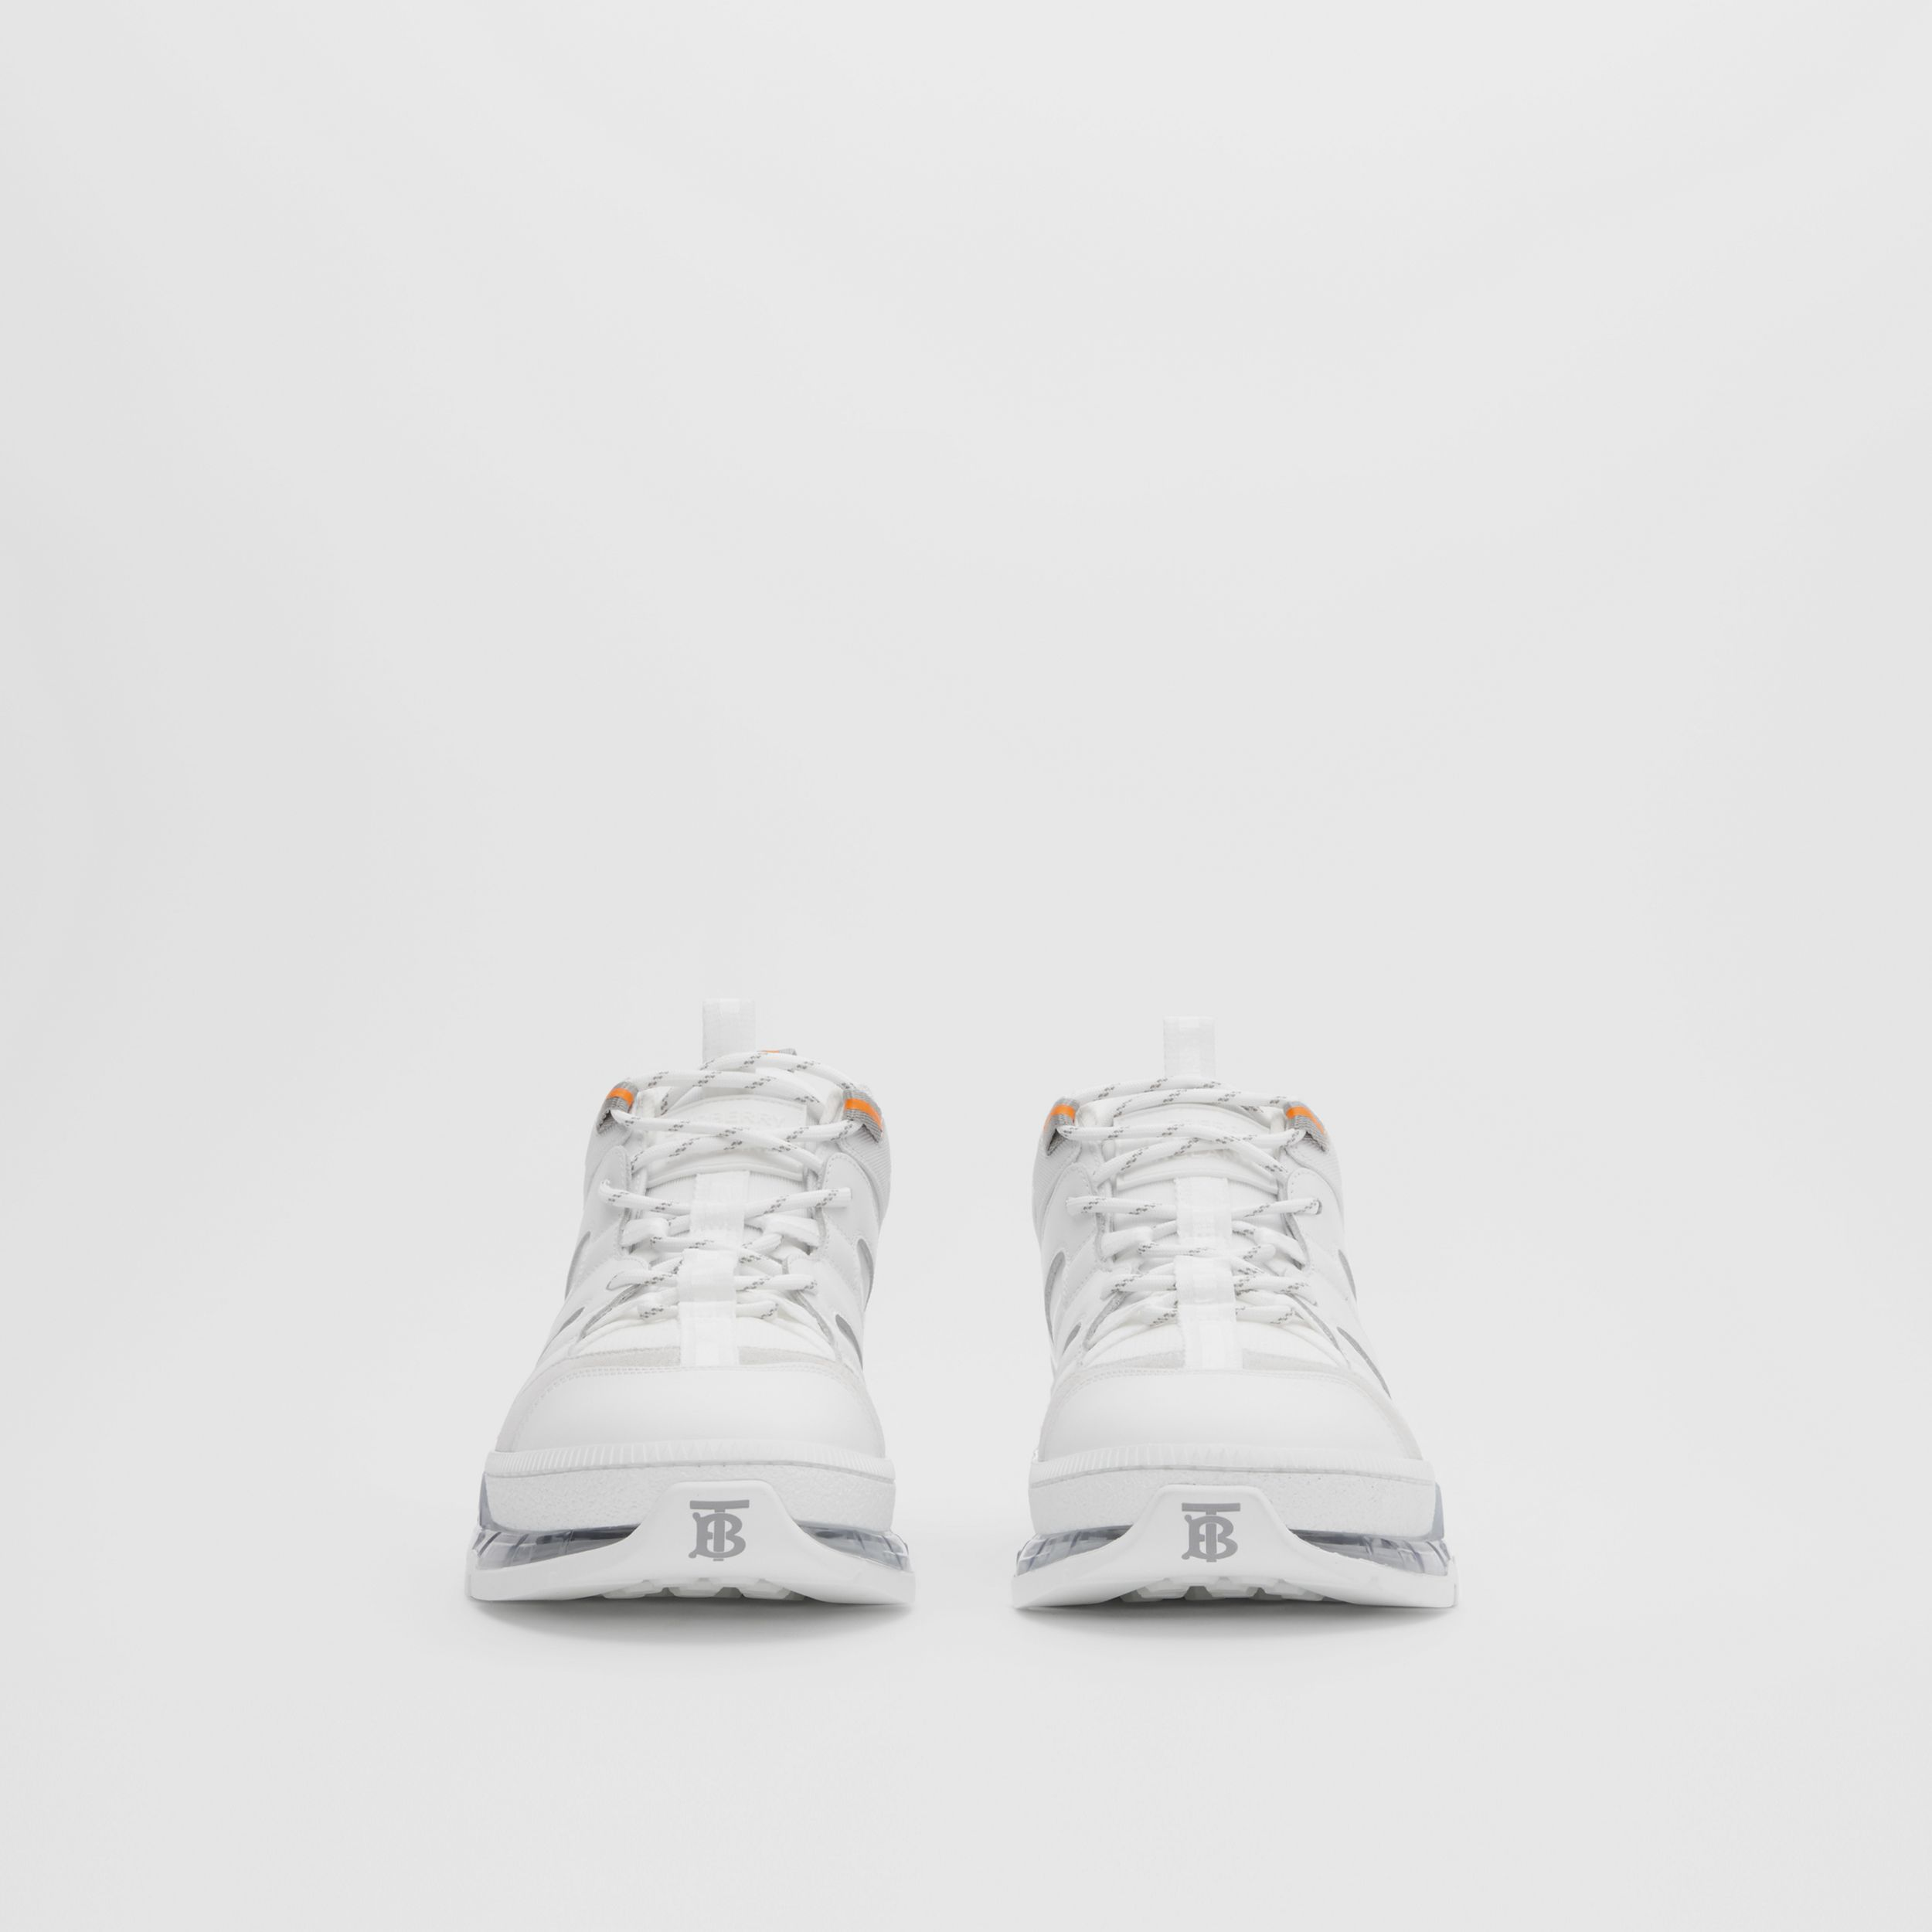 Nylon and Leather Union Sneakers in Optic White - Men | Burberry - 4